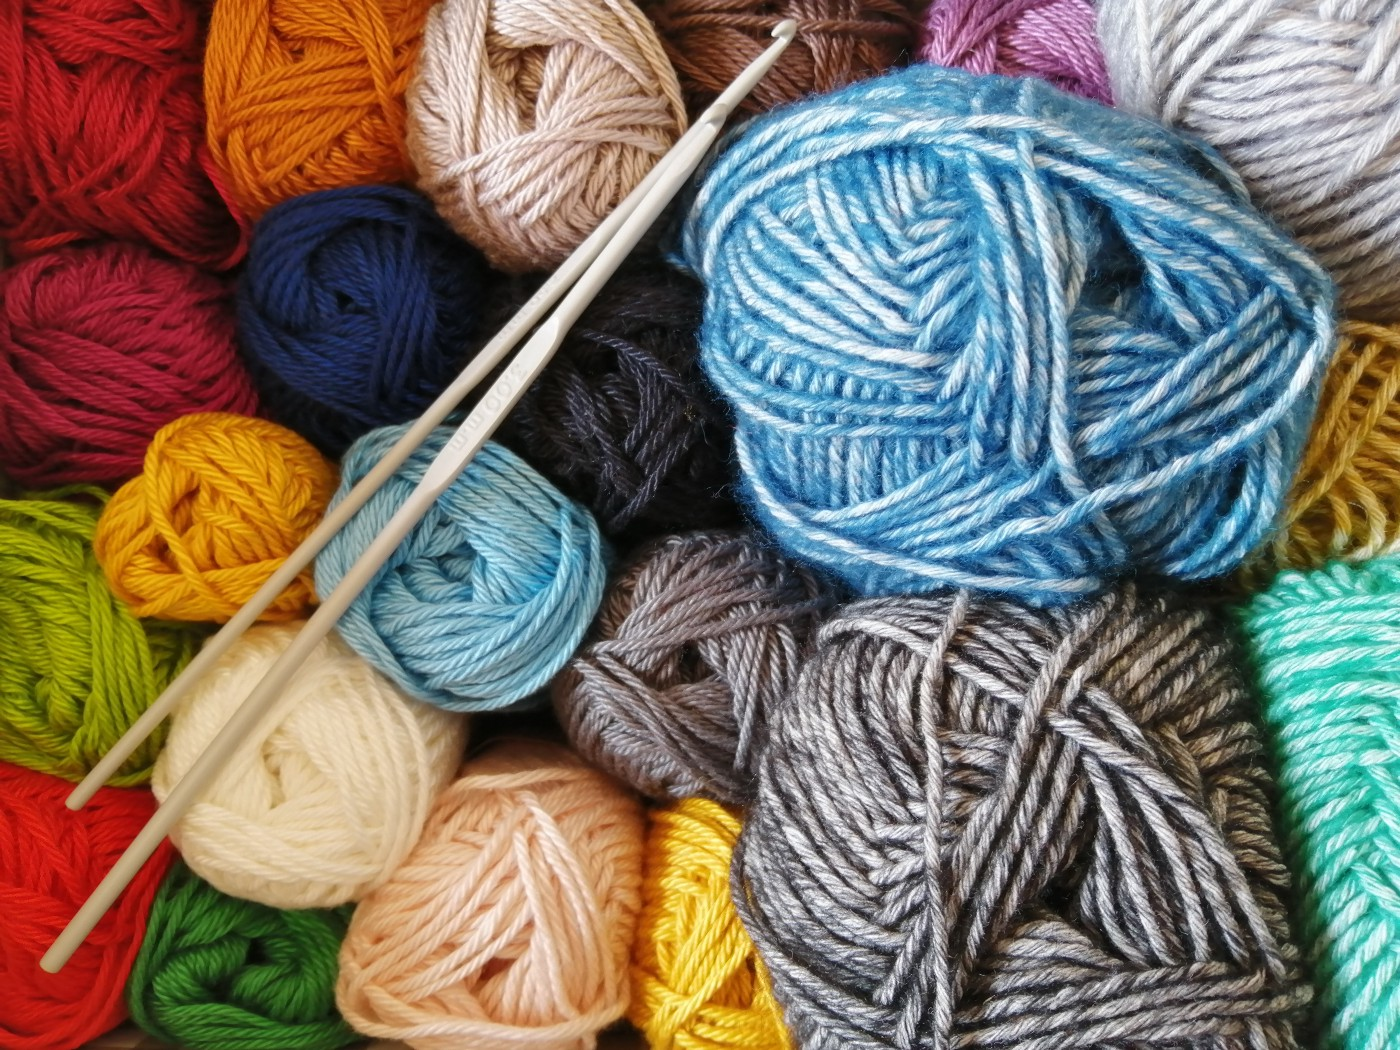 box full of balled-up yarns of different sizes and colors and two knitting needles